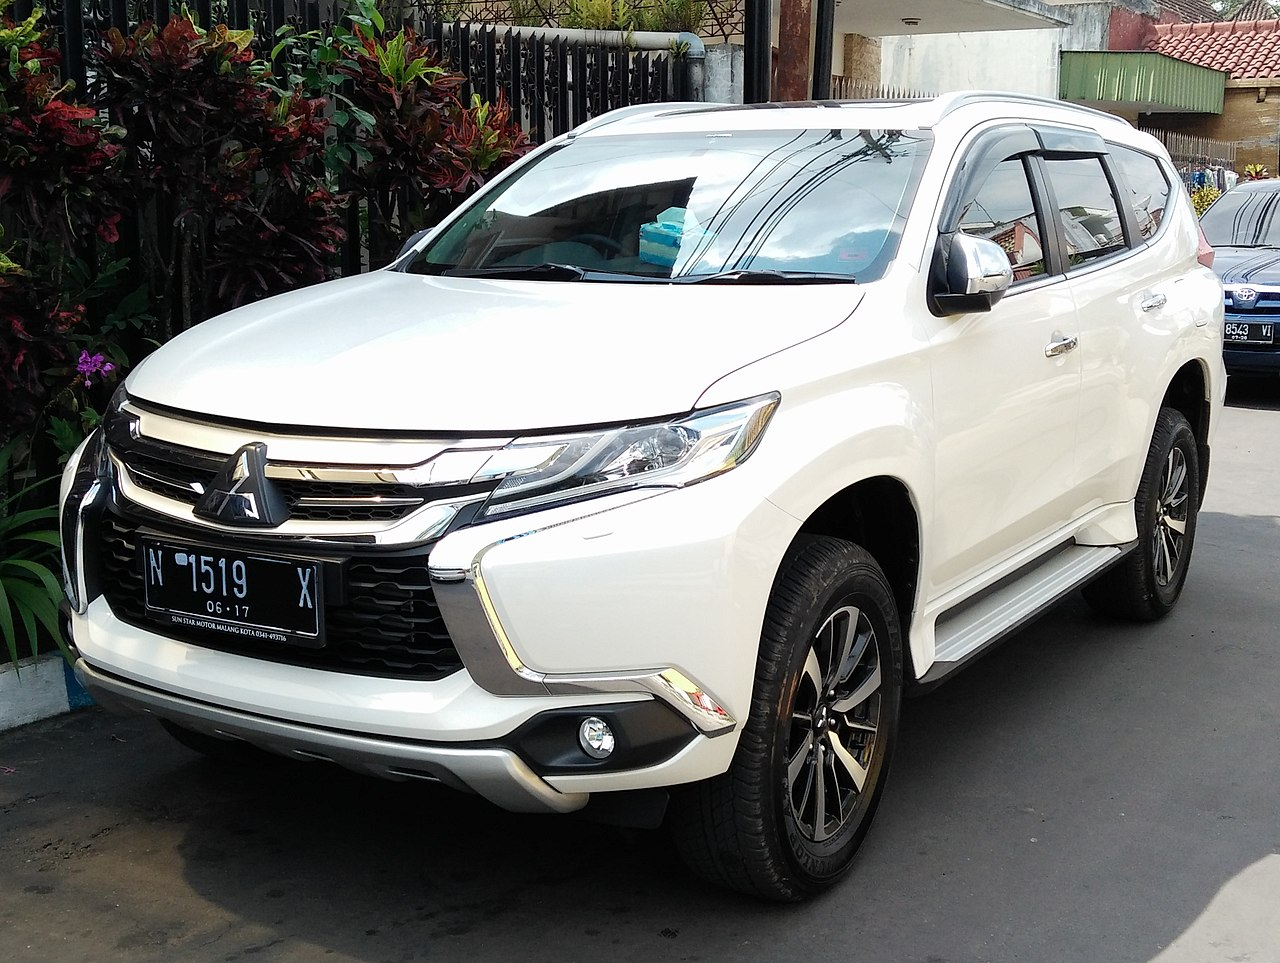 file 2017 mitsubishi pajero sport malang cropped jpg wikimedia commons. Black Bedroom Furniture Sets. Home Design Ideas